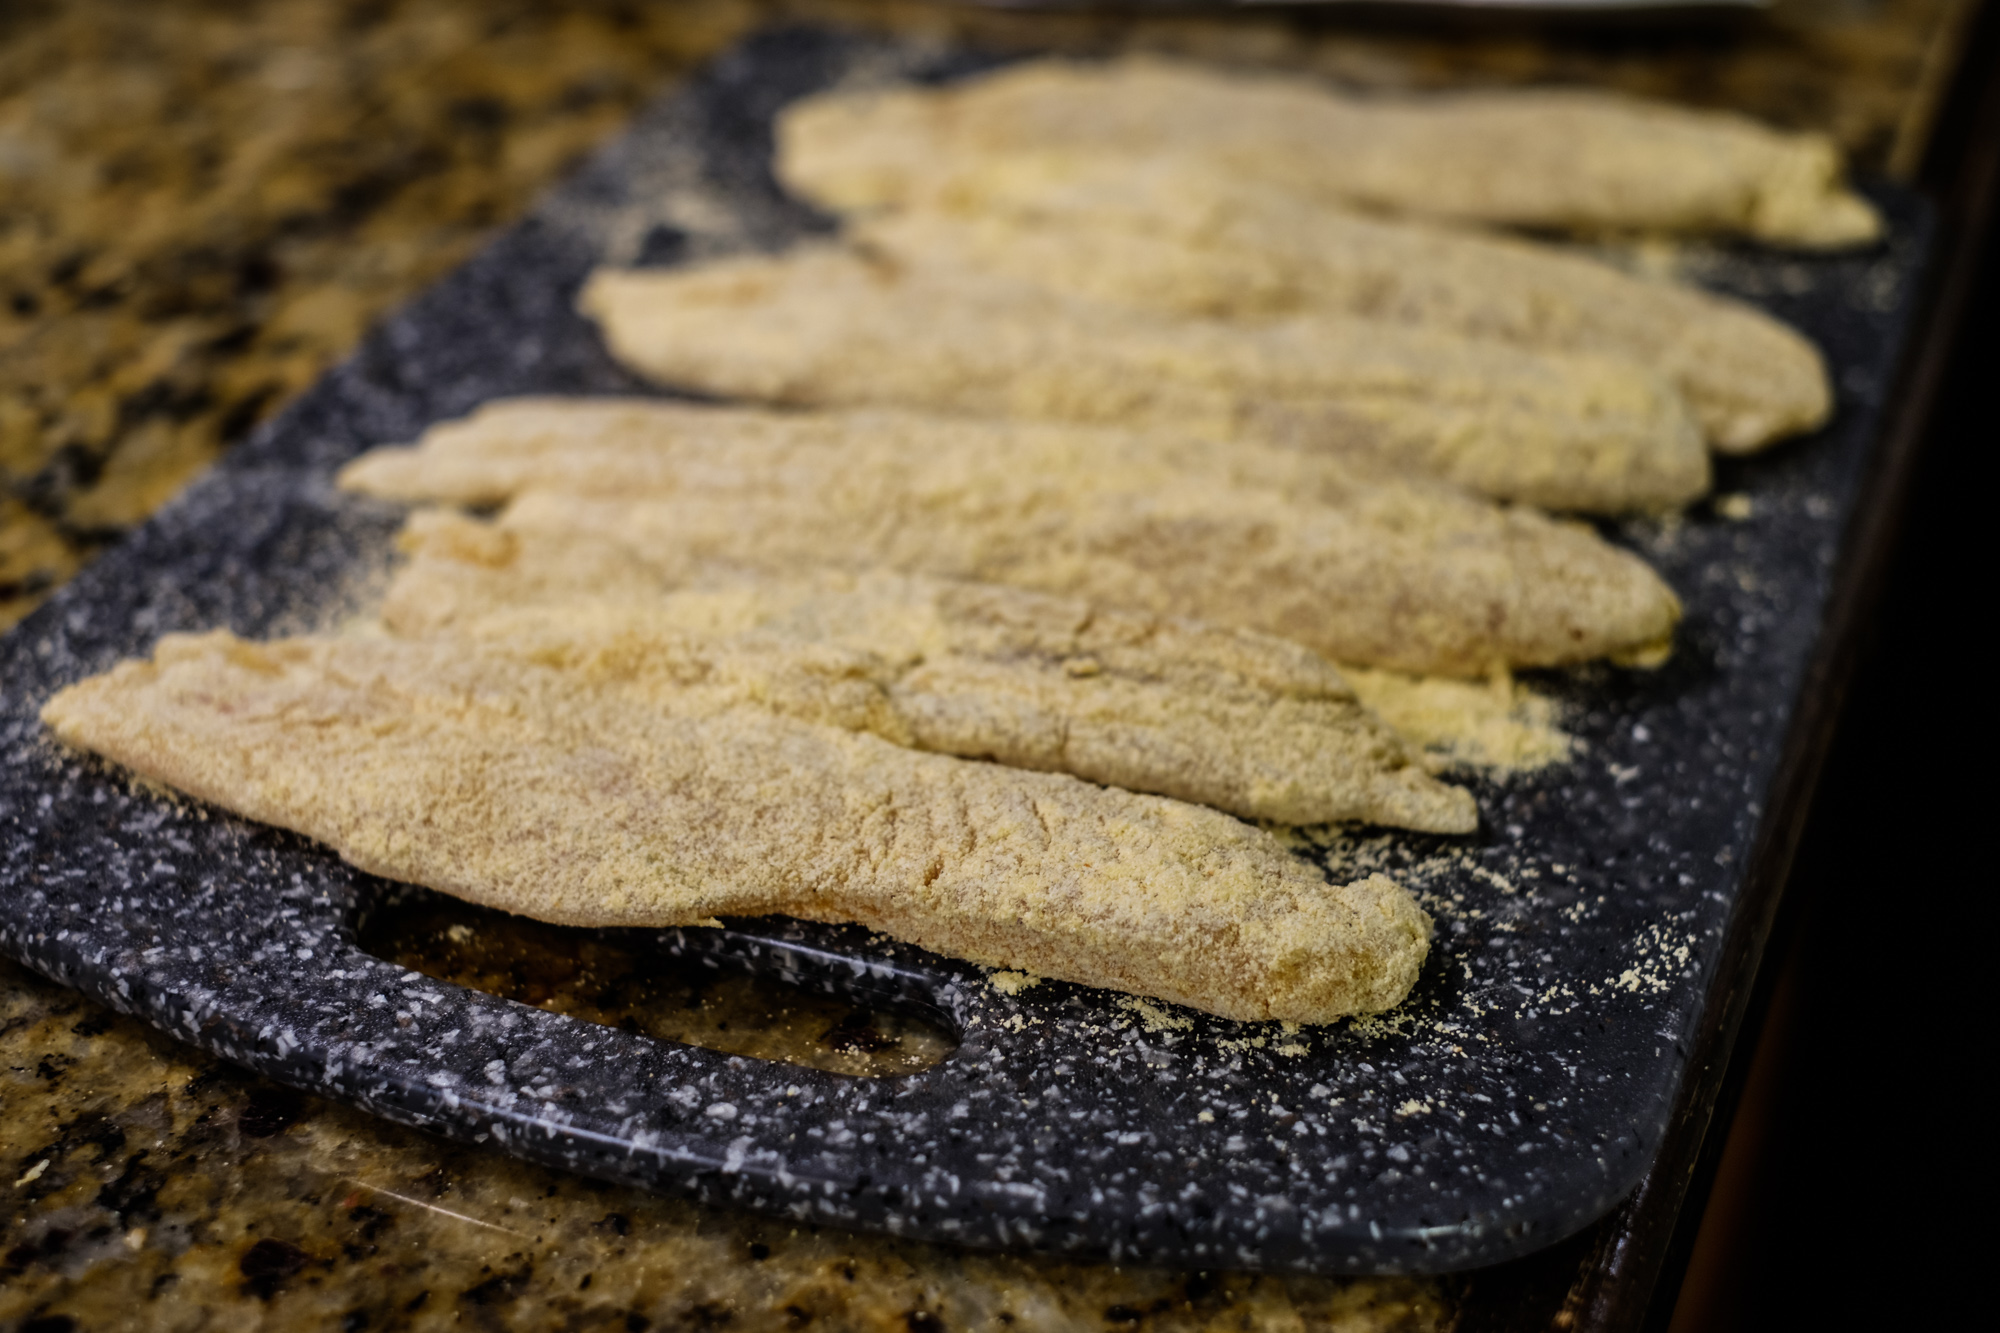 Fillets breaded in fish fry